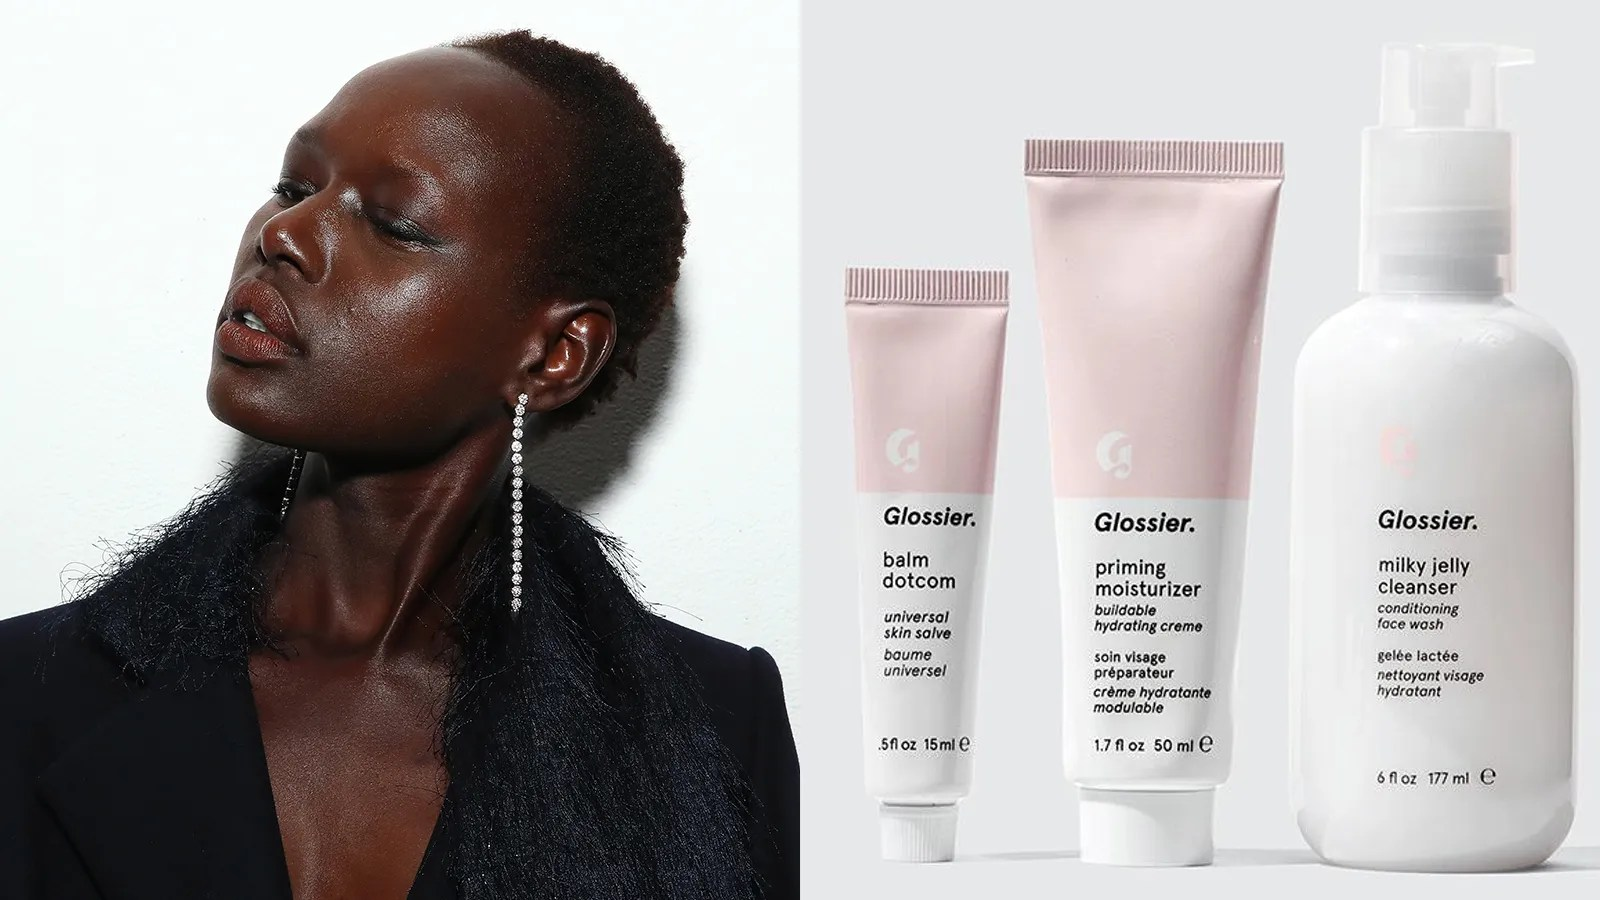 Because, honestly, who doesn't want glowing skin?